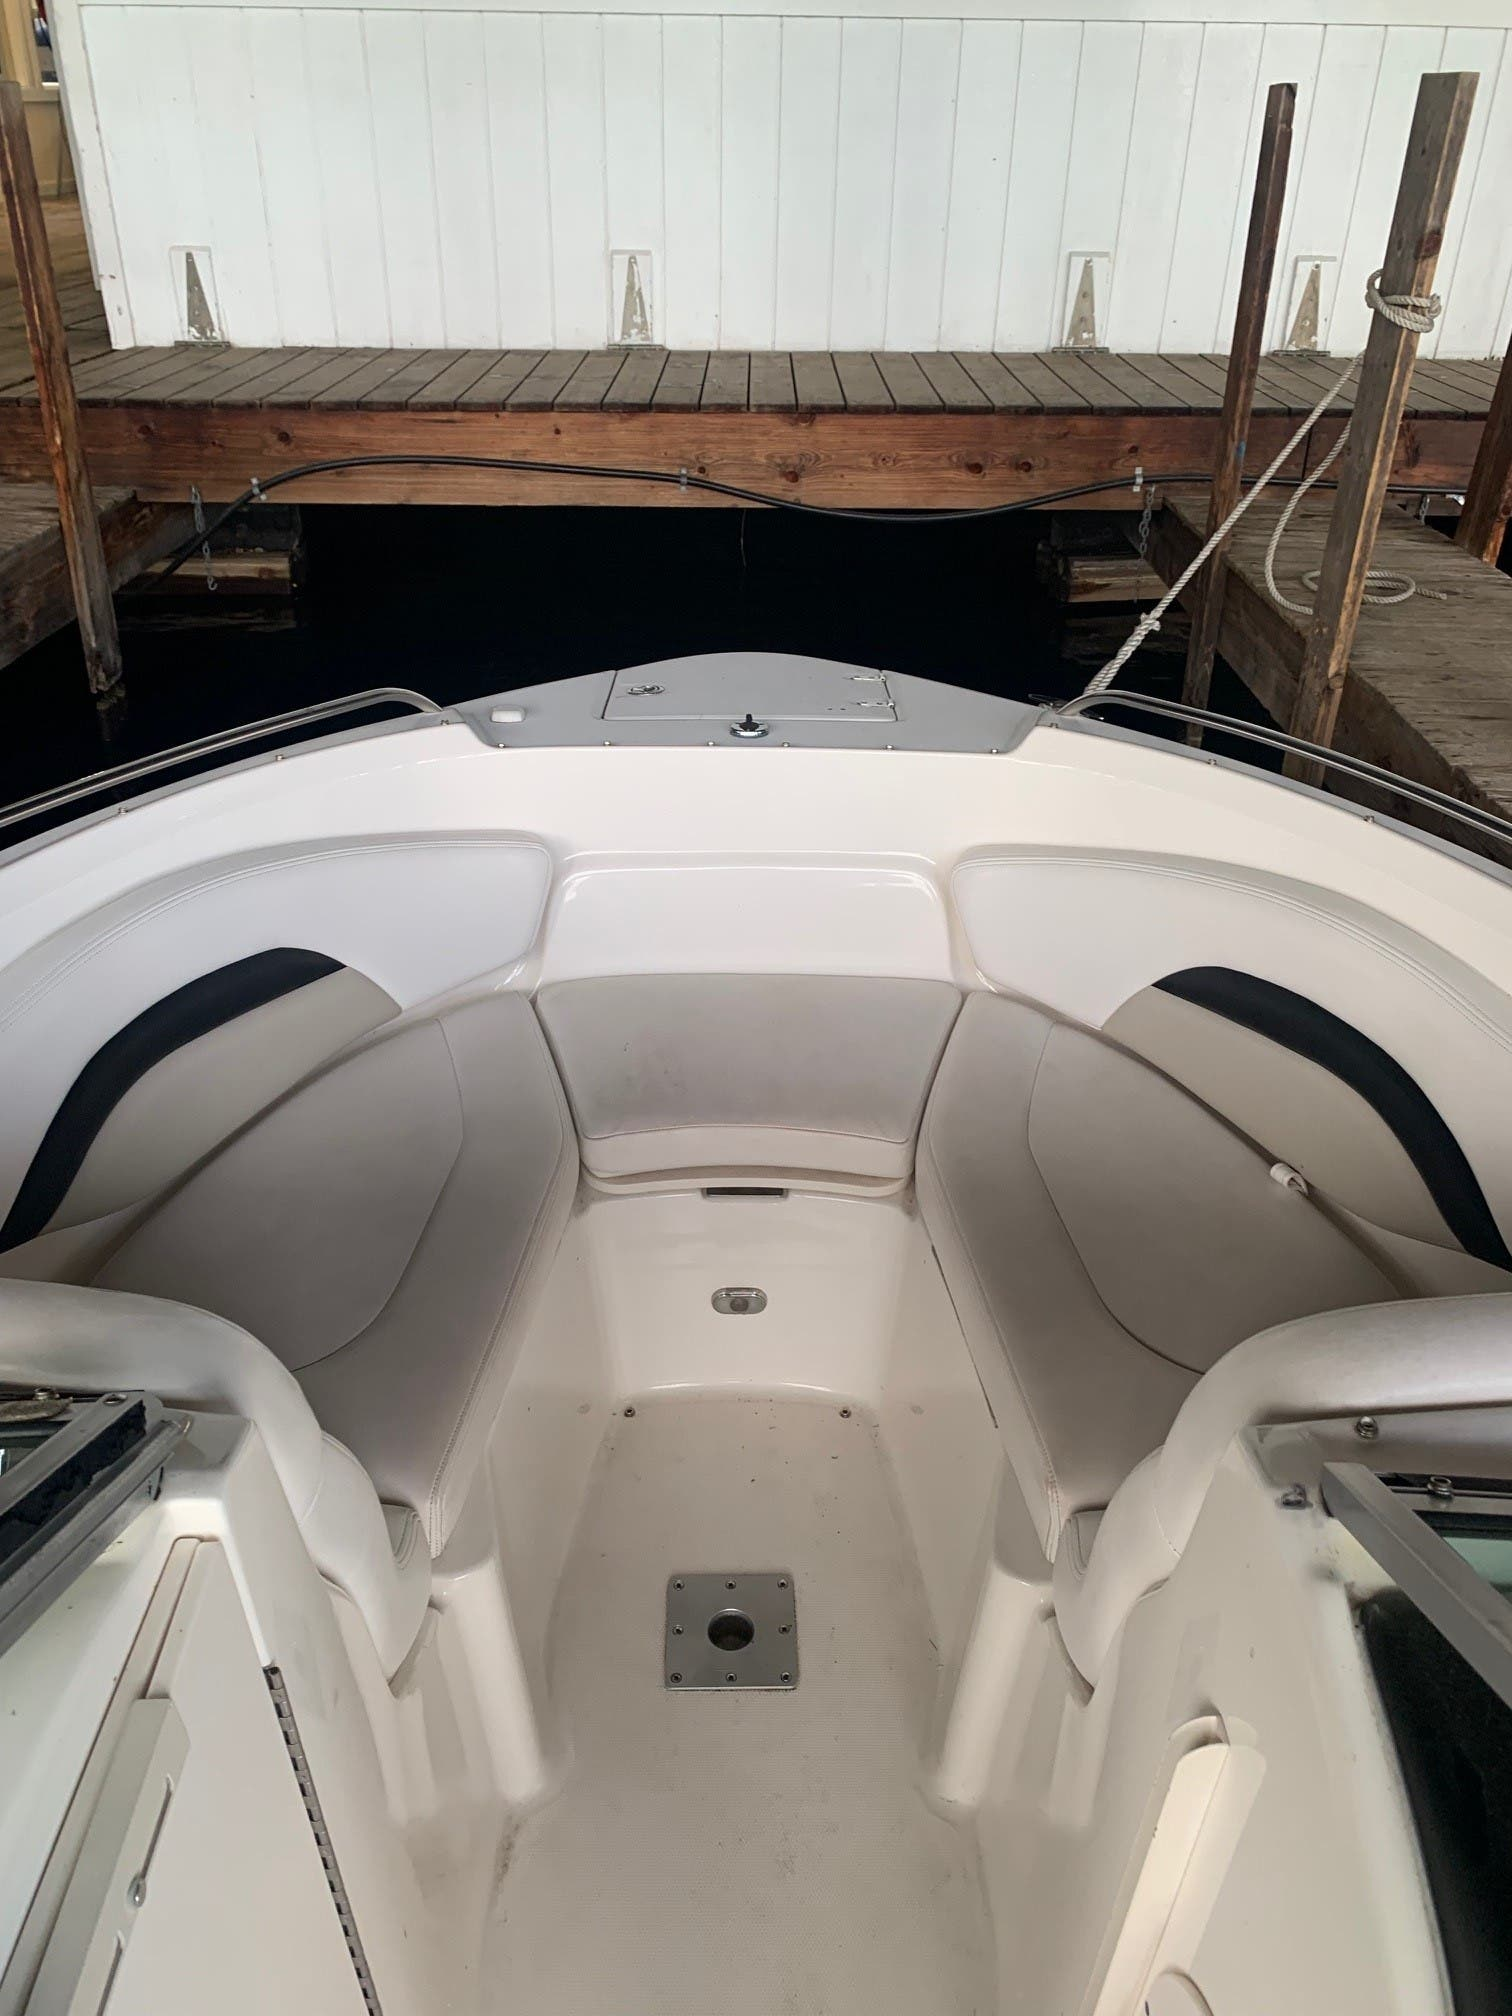 2007 Chaparral boat for sale, model of the boat is 236 SSX & Image # 4 of 7